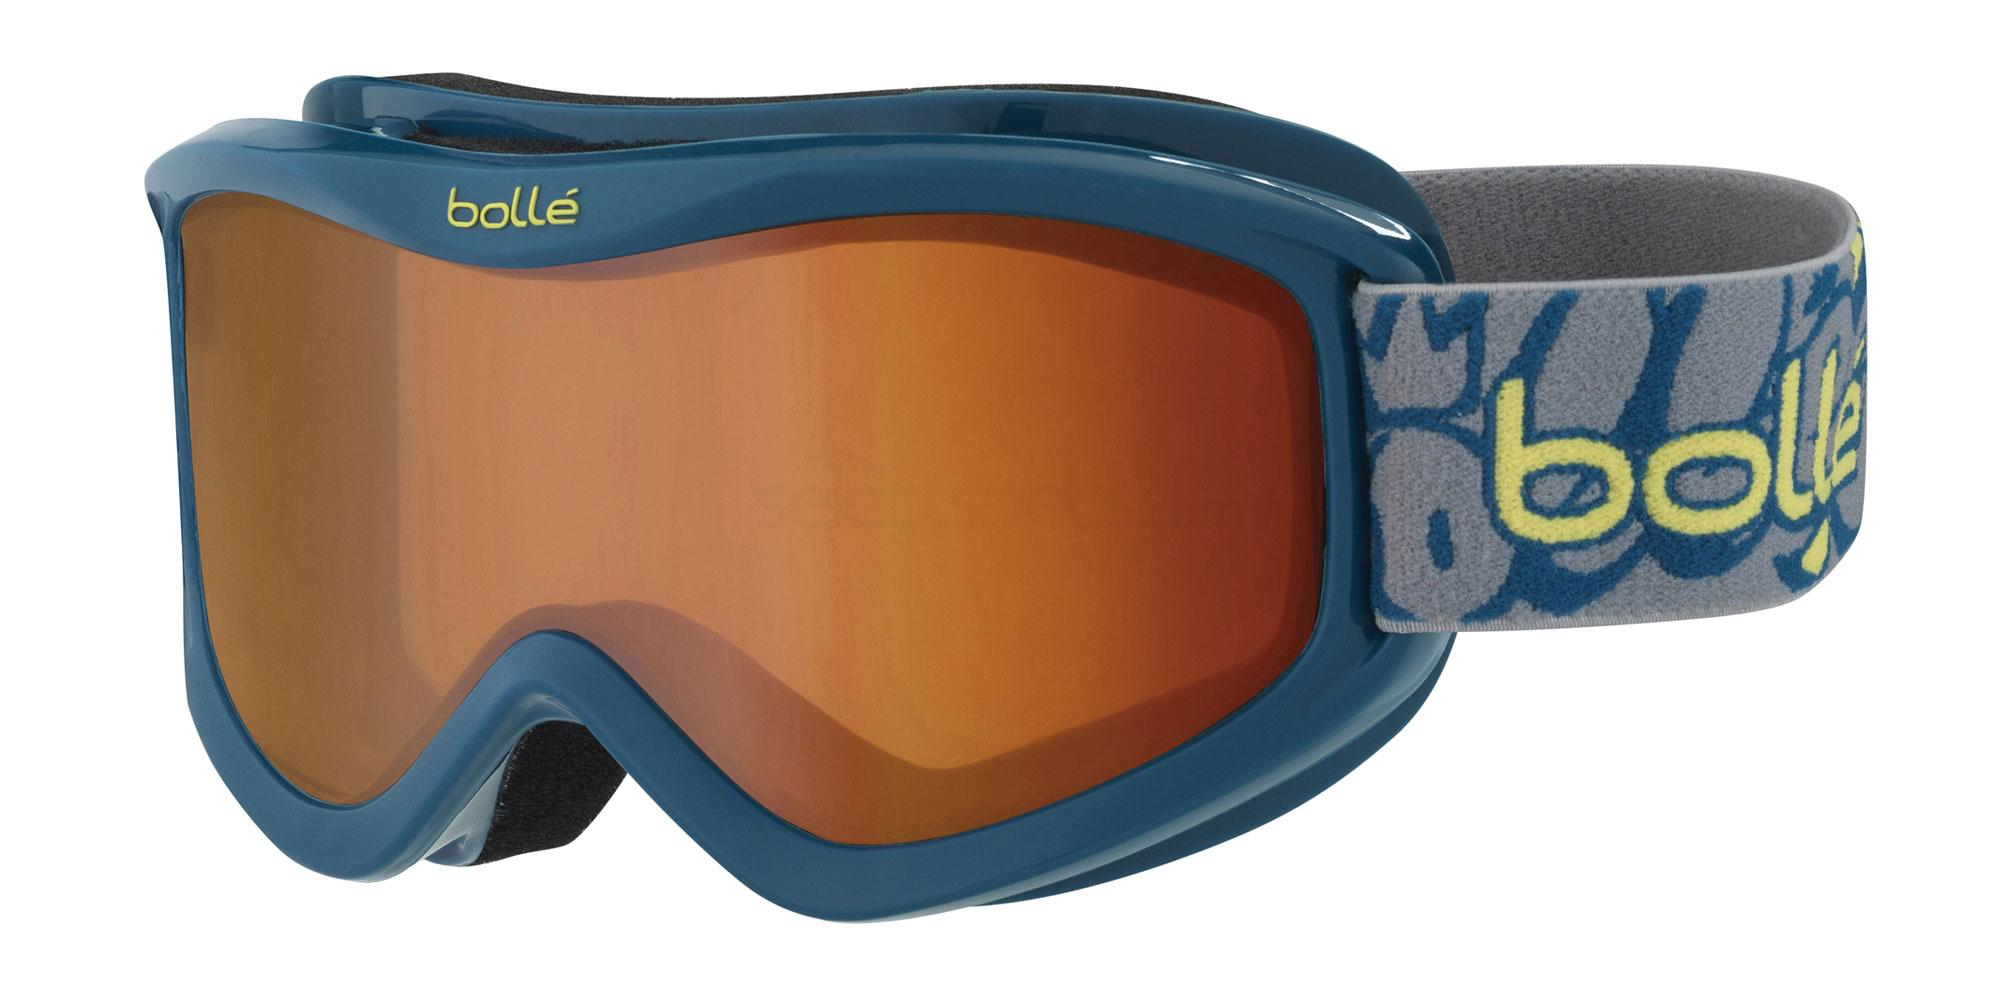 21506 VOLT (+6 years) Goggles, Bolle KIDS